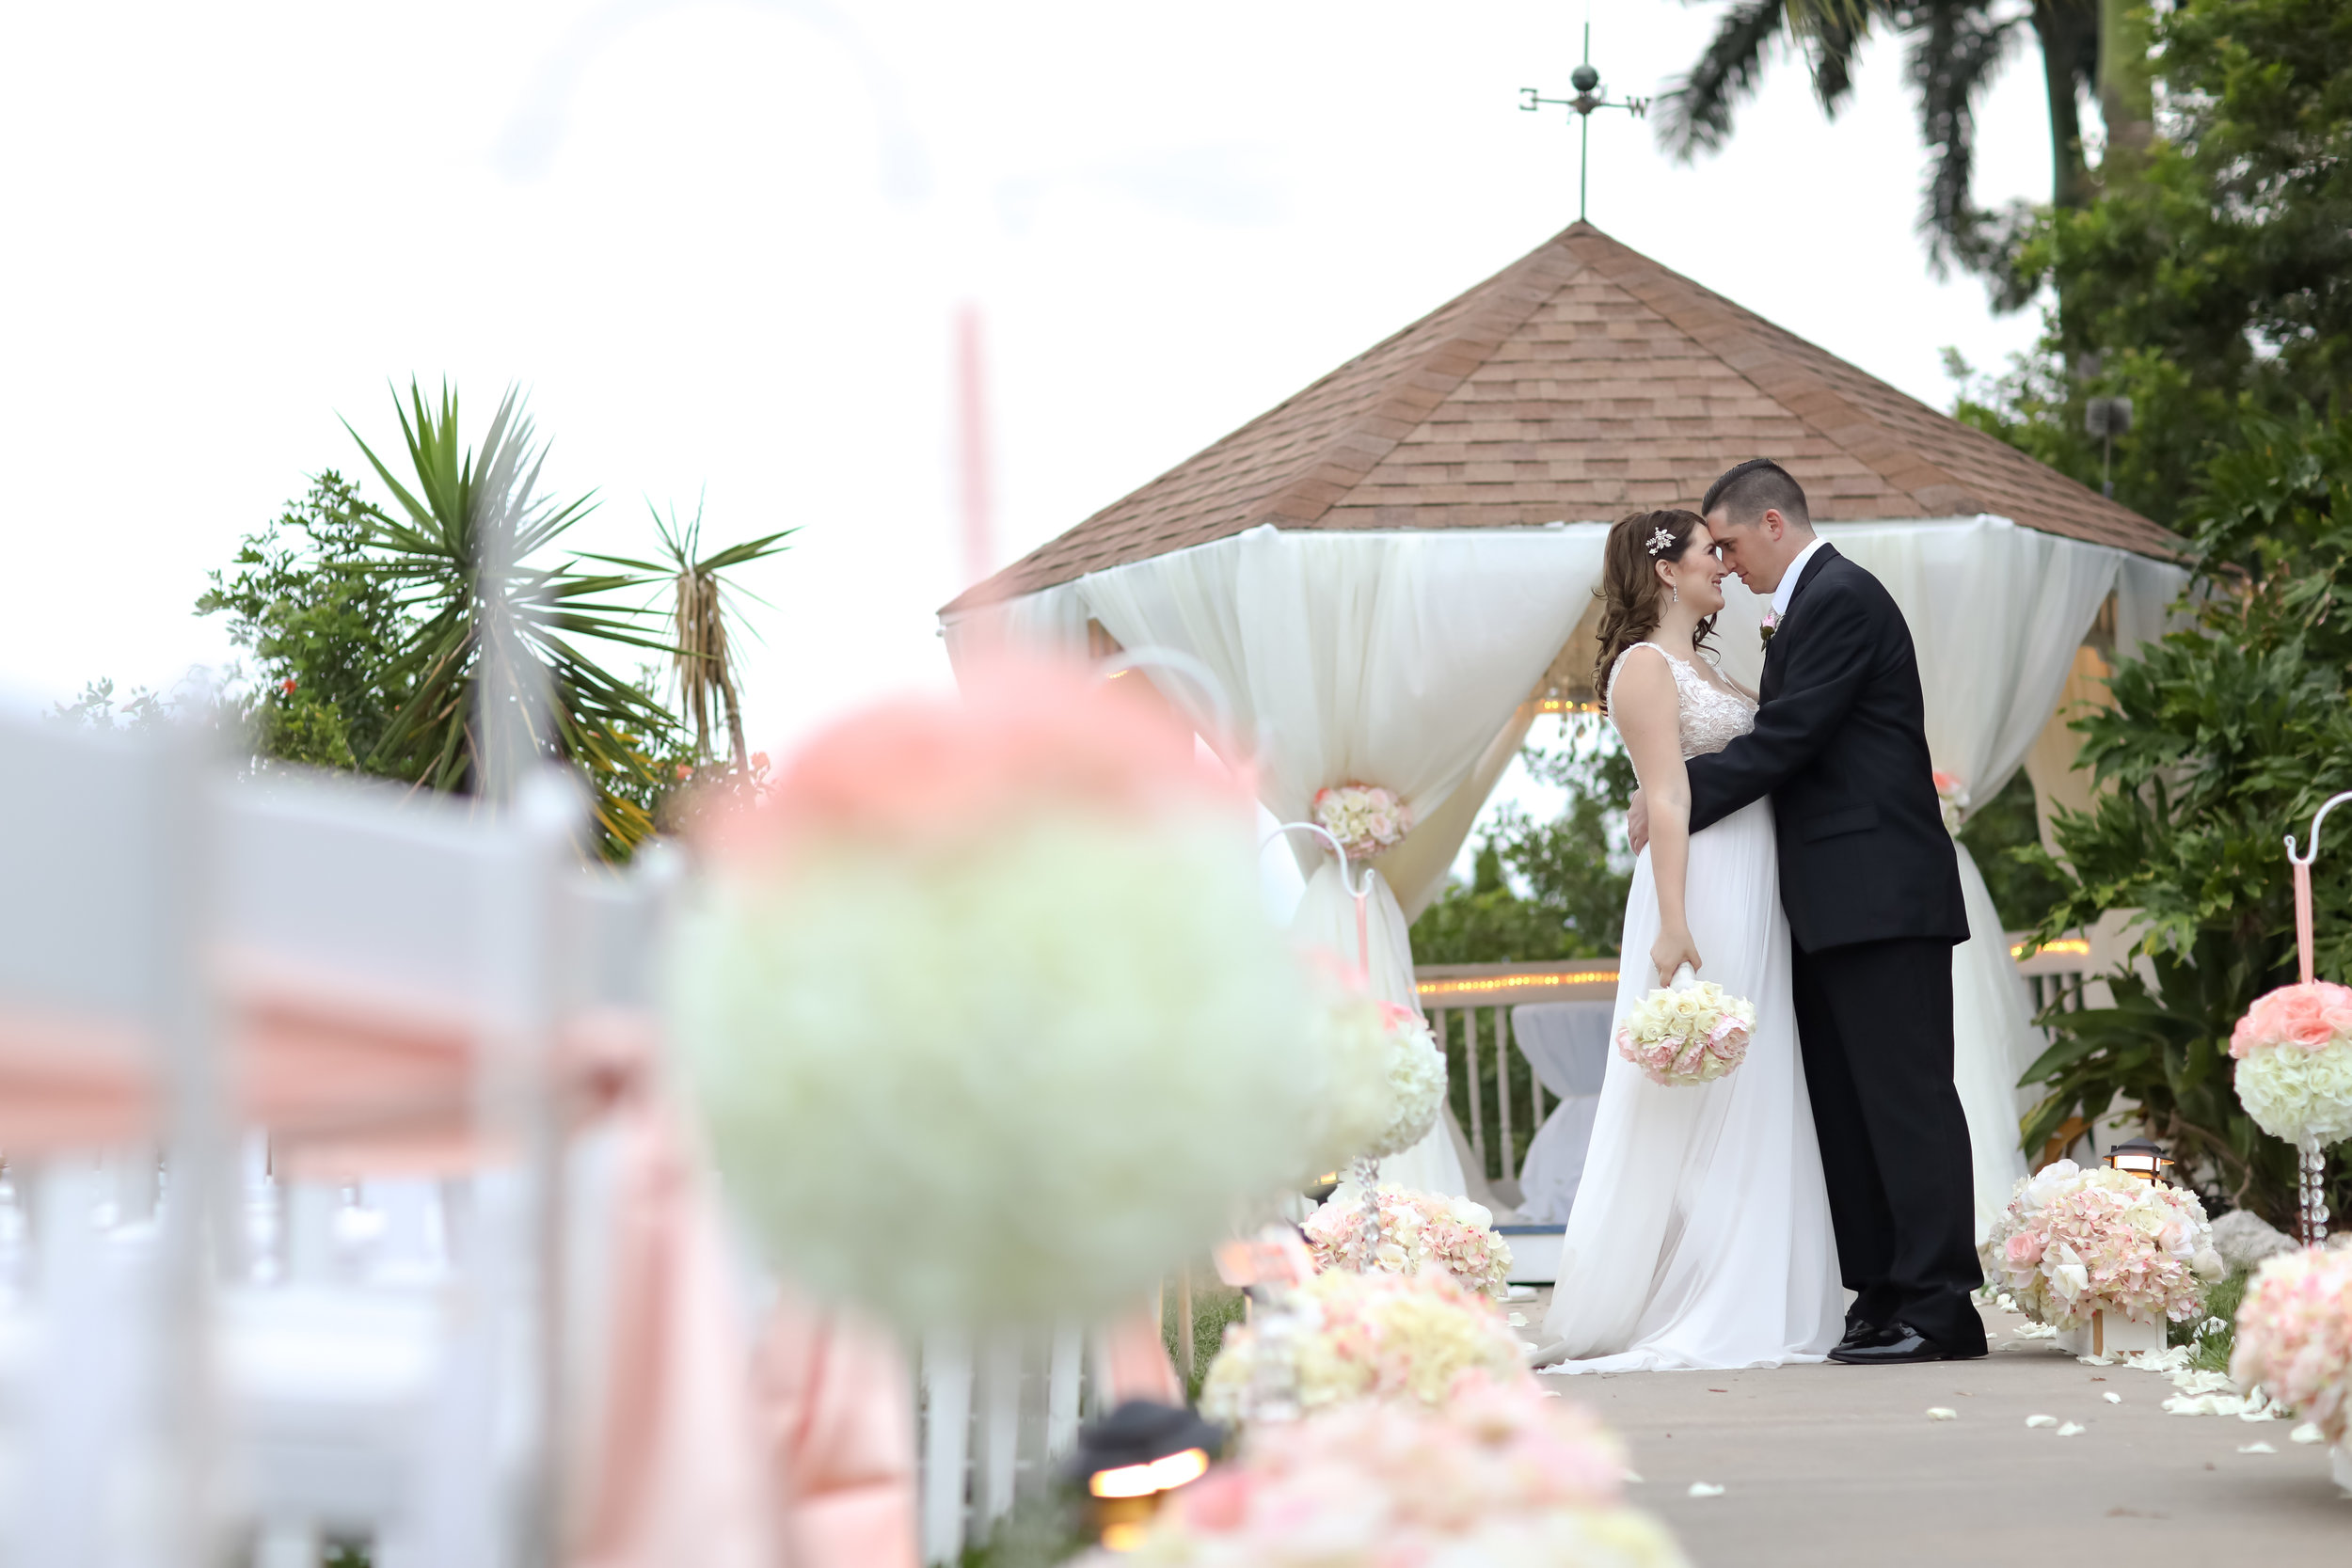 Soft peach and ivory florals were in abundance for this outdoor ceremony.